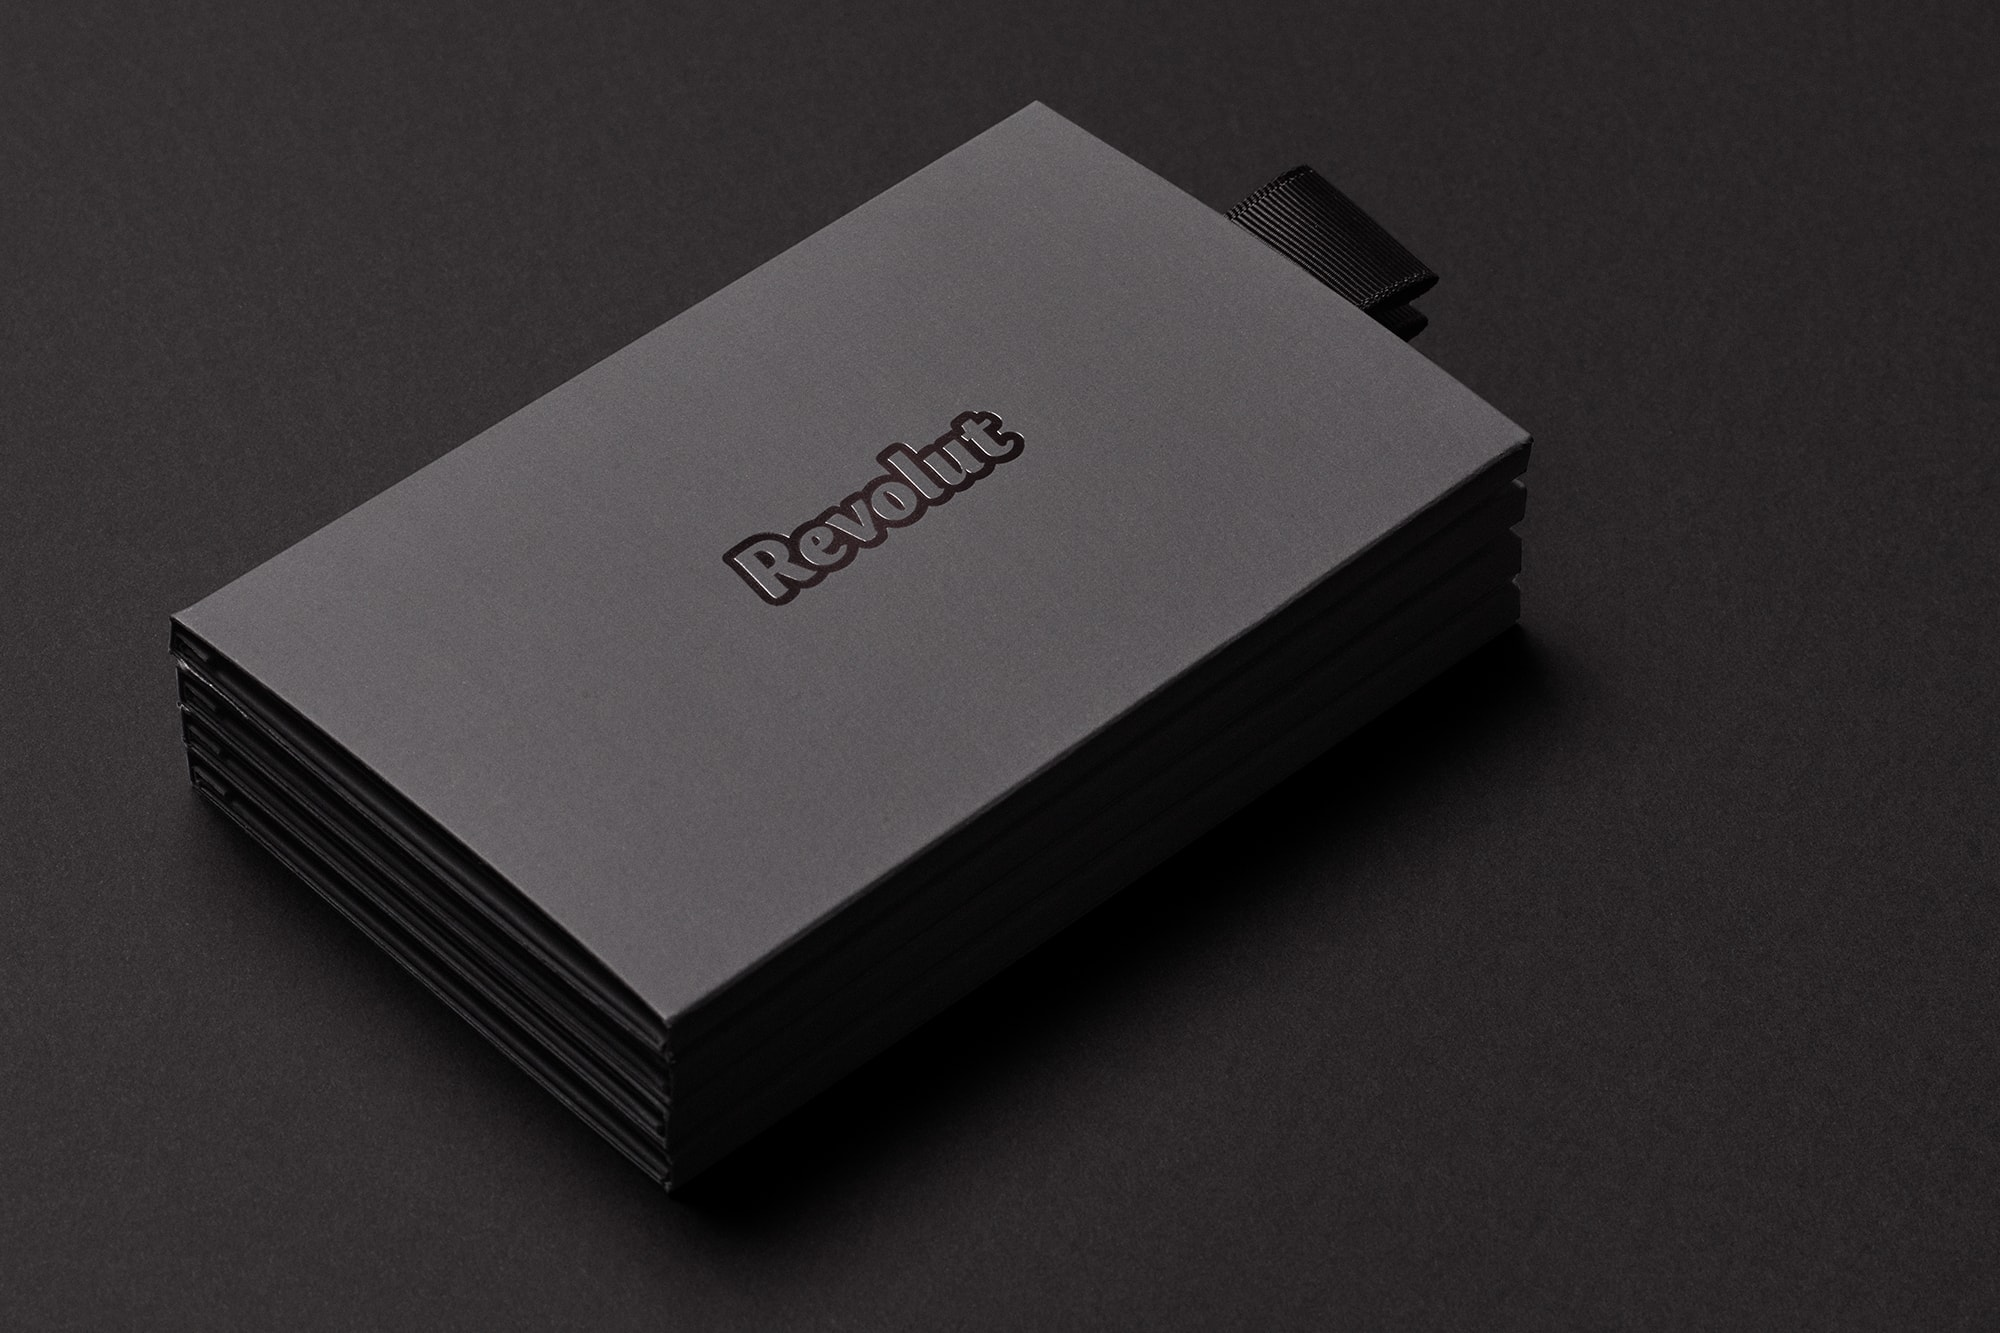 Perspective view of Revolut Premium bank card packaging in black with the revolut logo shown on a black background.